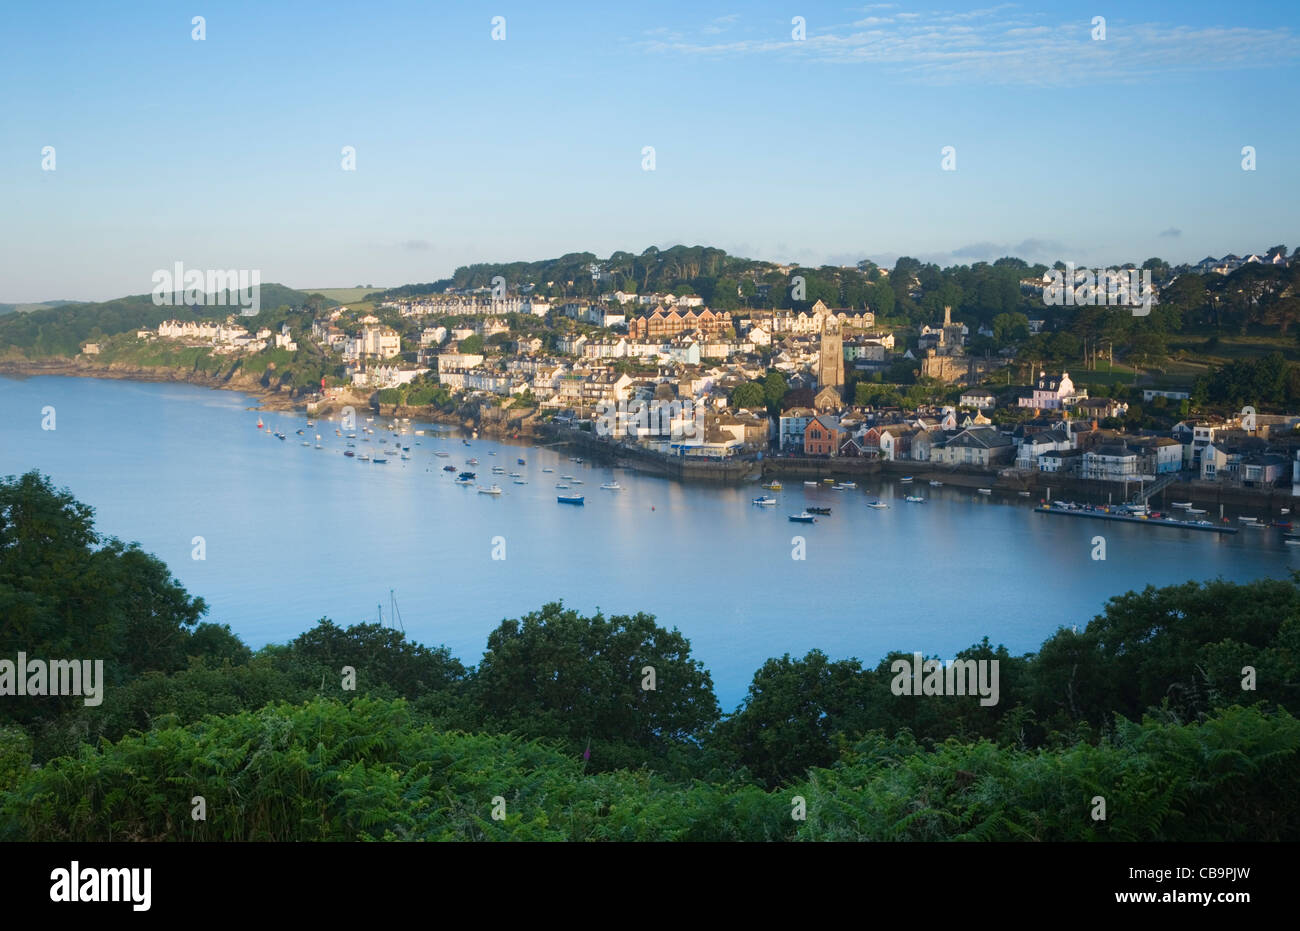 Fowey and the River Fowey Estuary, seen from the Hall Walk. Cornwall. England. UK. - Stock Image